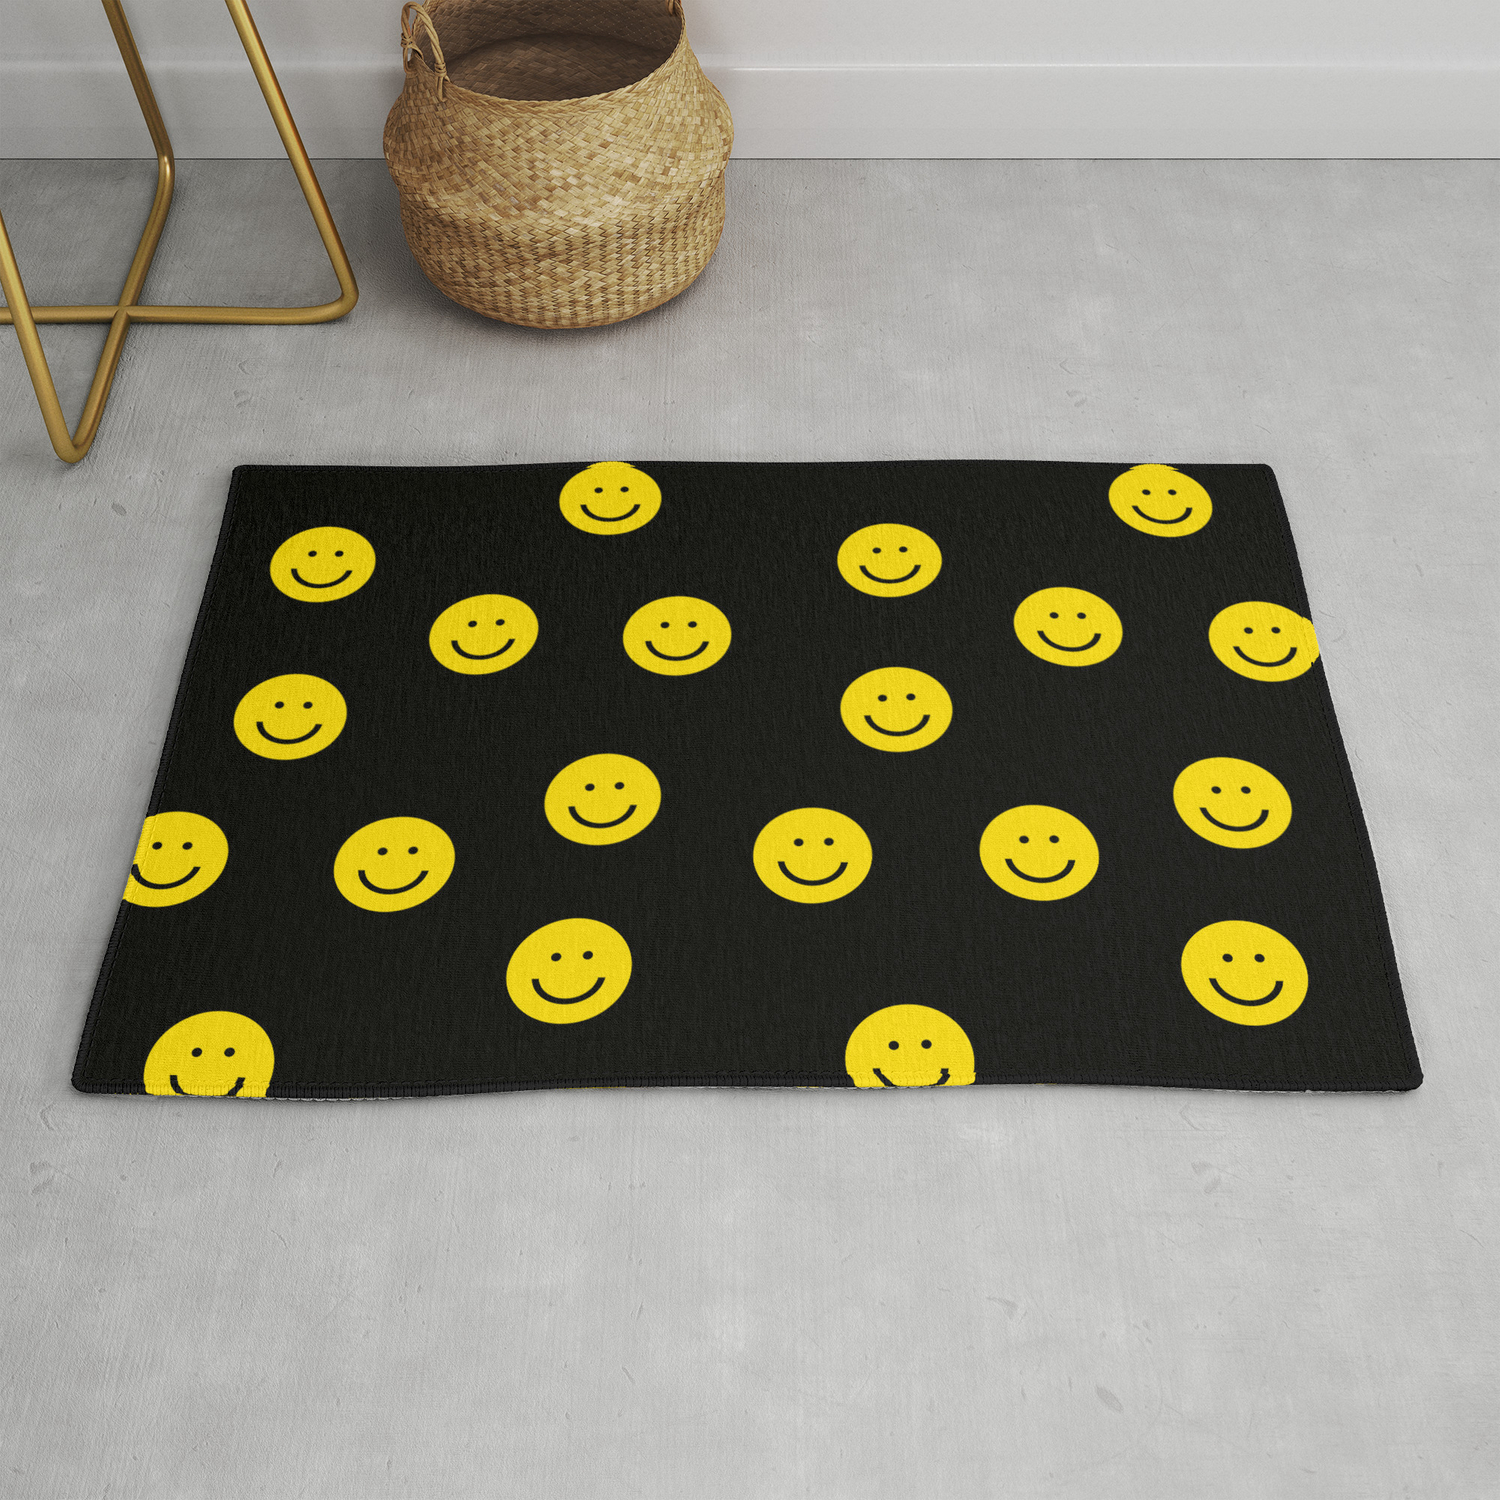 Smiley Faces Yellow Happy Simple Rainbow Colors Pattern Smile Face Kids Nursery Boys Girls Decor Rug By Charlottewinter